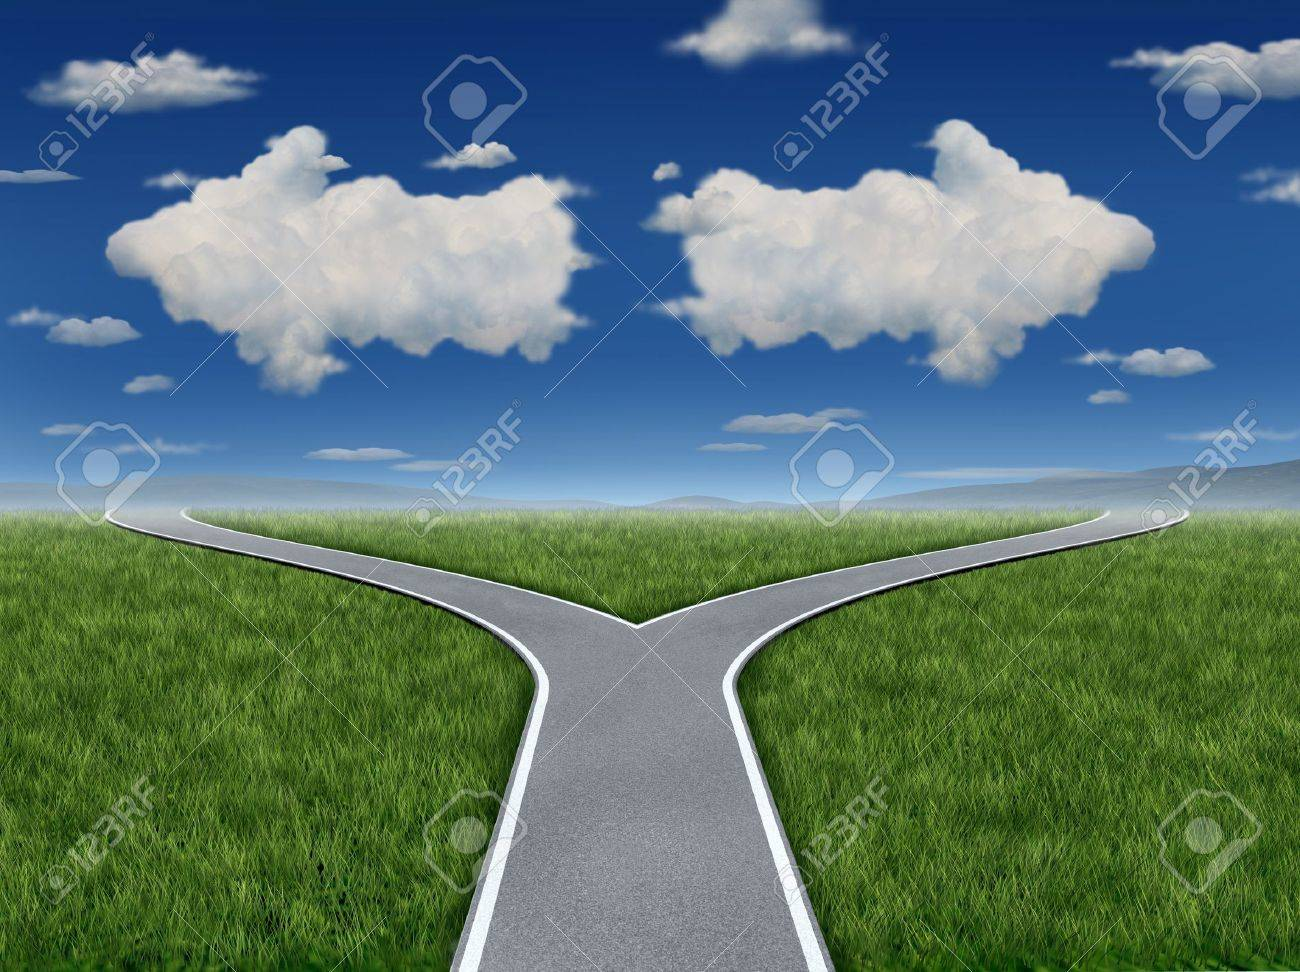 Decision Inspiration as a group of clouds in the shape of an arrow sign pointing in opposite paths as a business dilemma symbol of a crossroads concept - 17997217